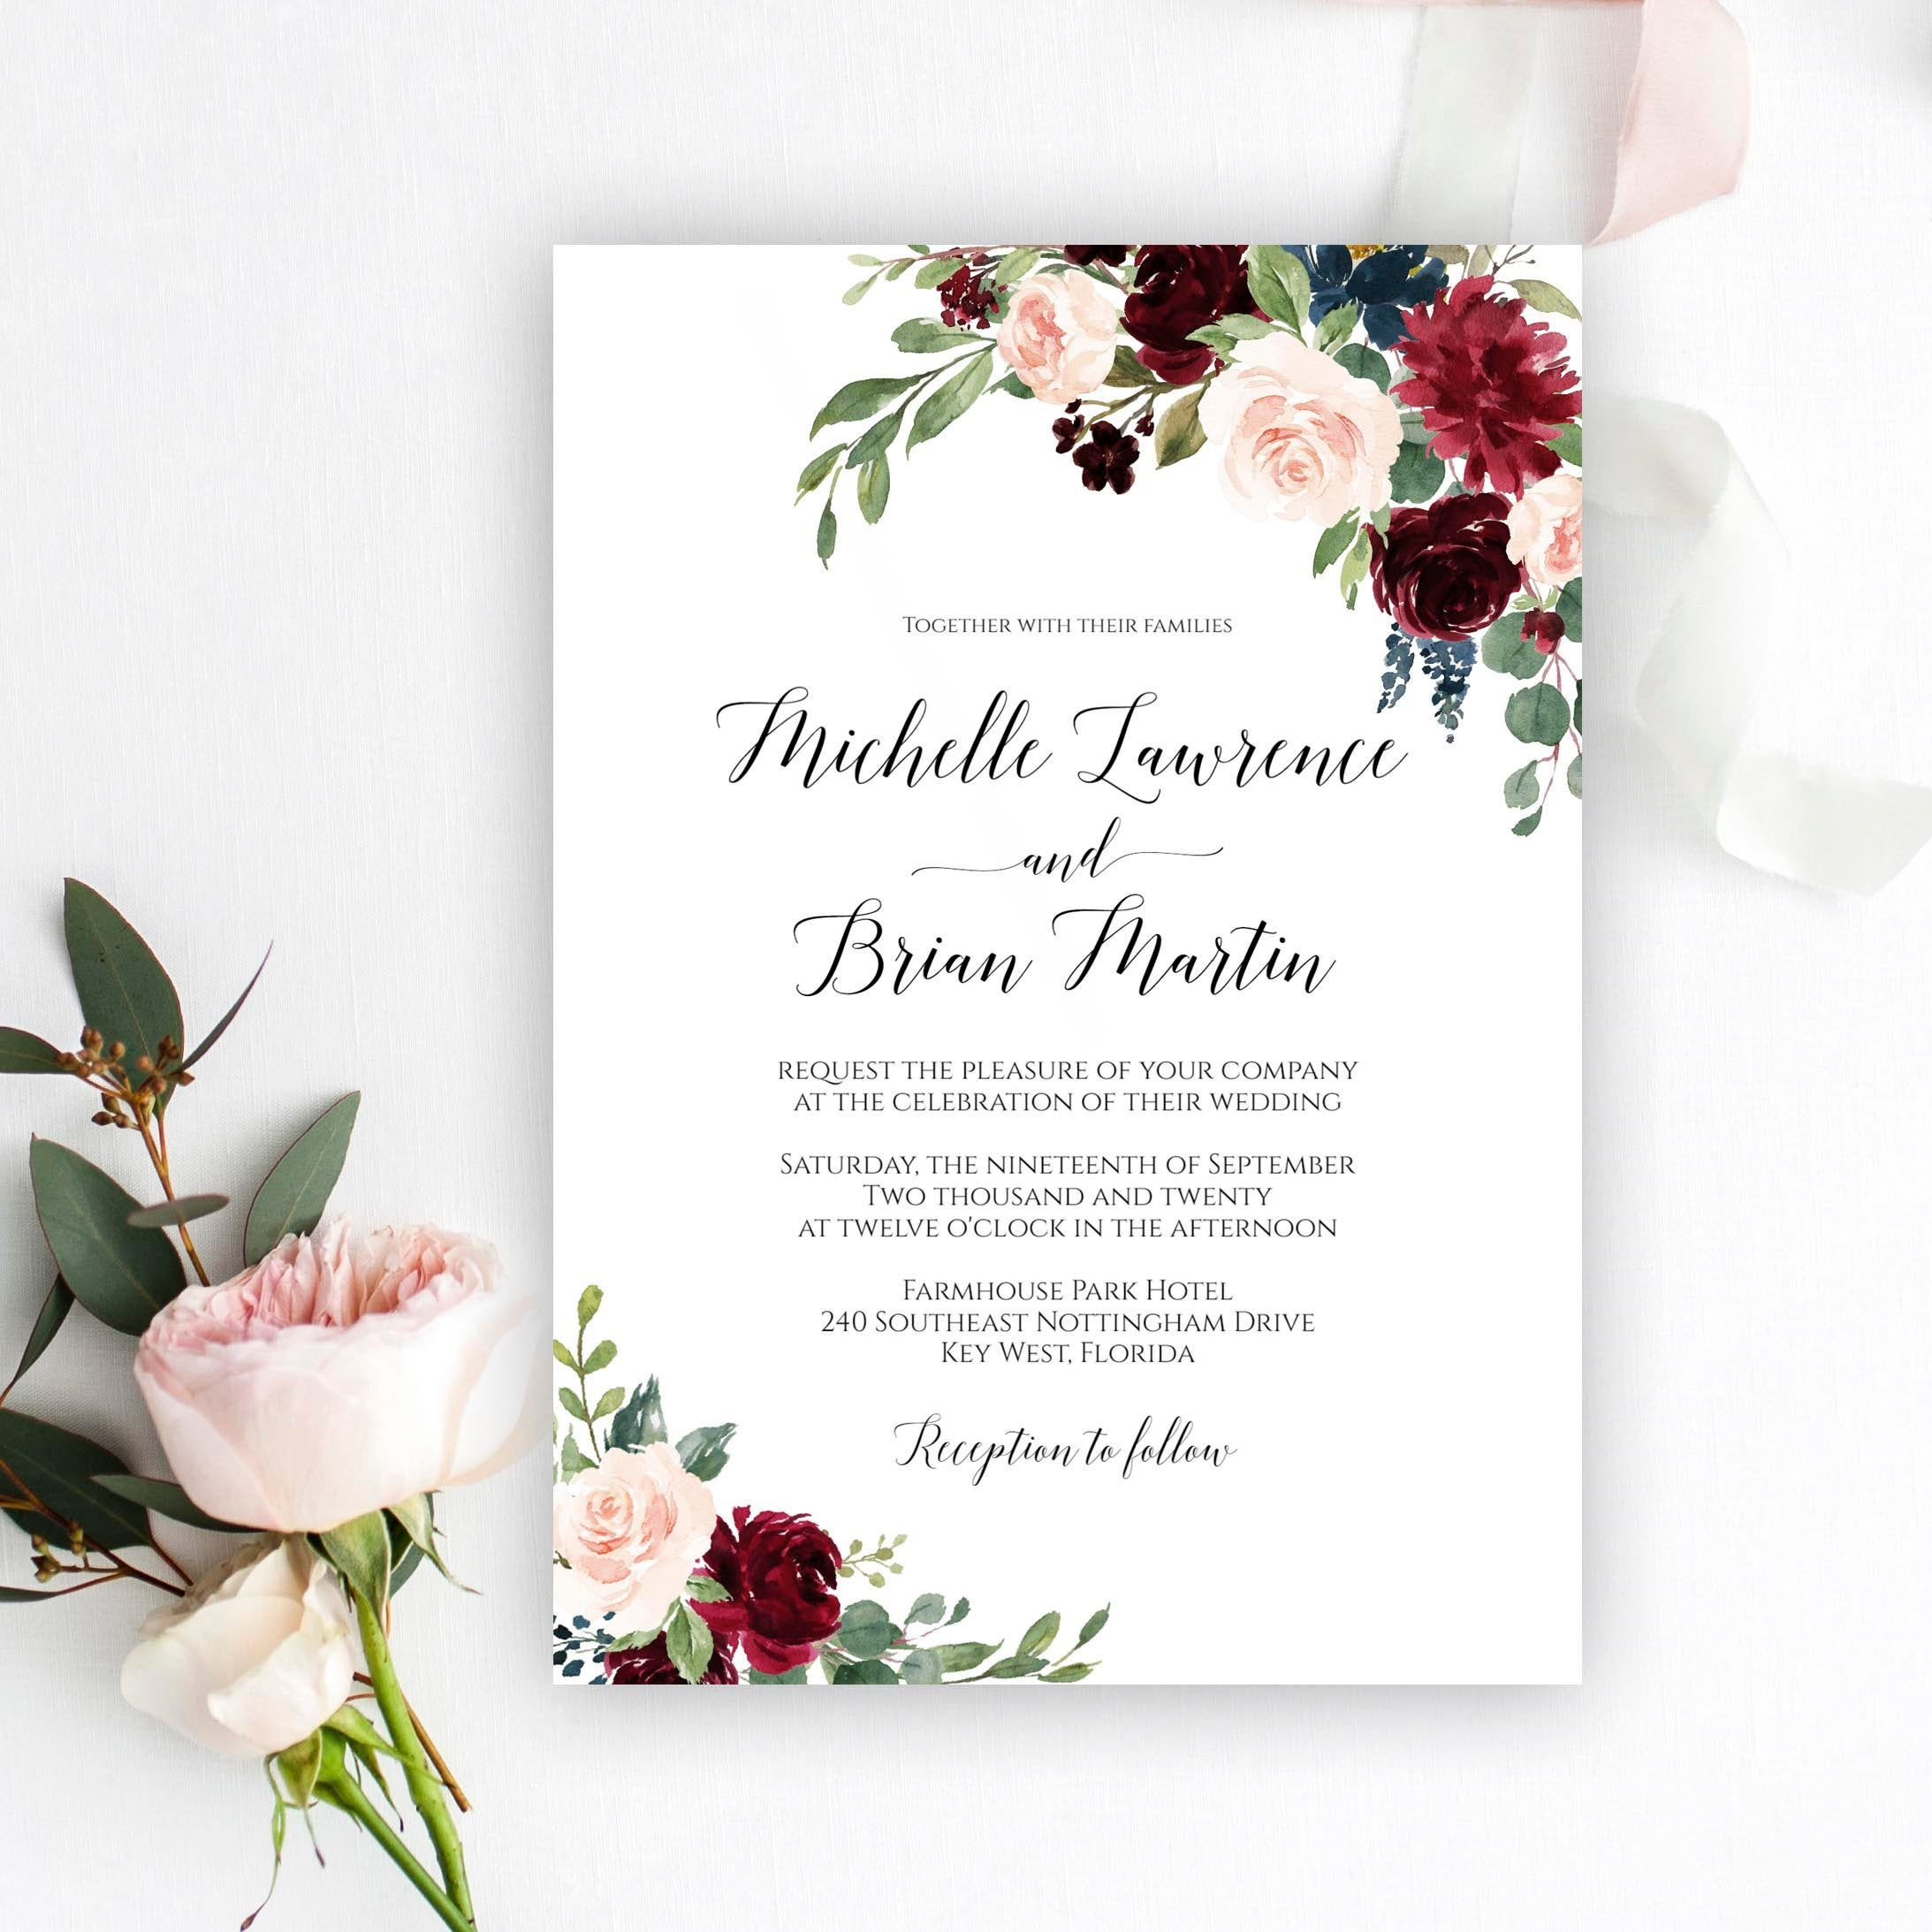 Wedding Invitation Card Psd Templates Free Download - Many Template